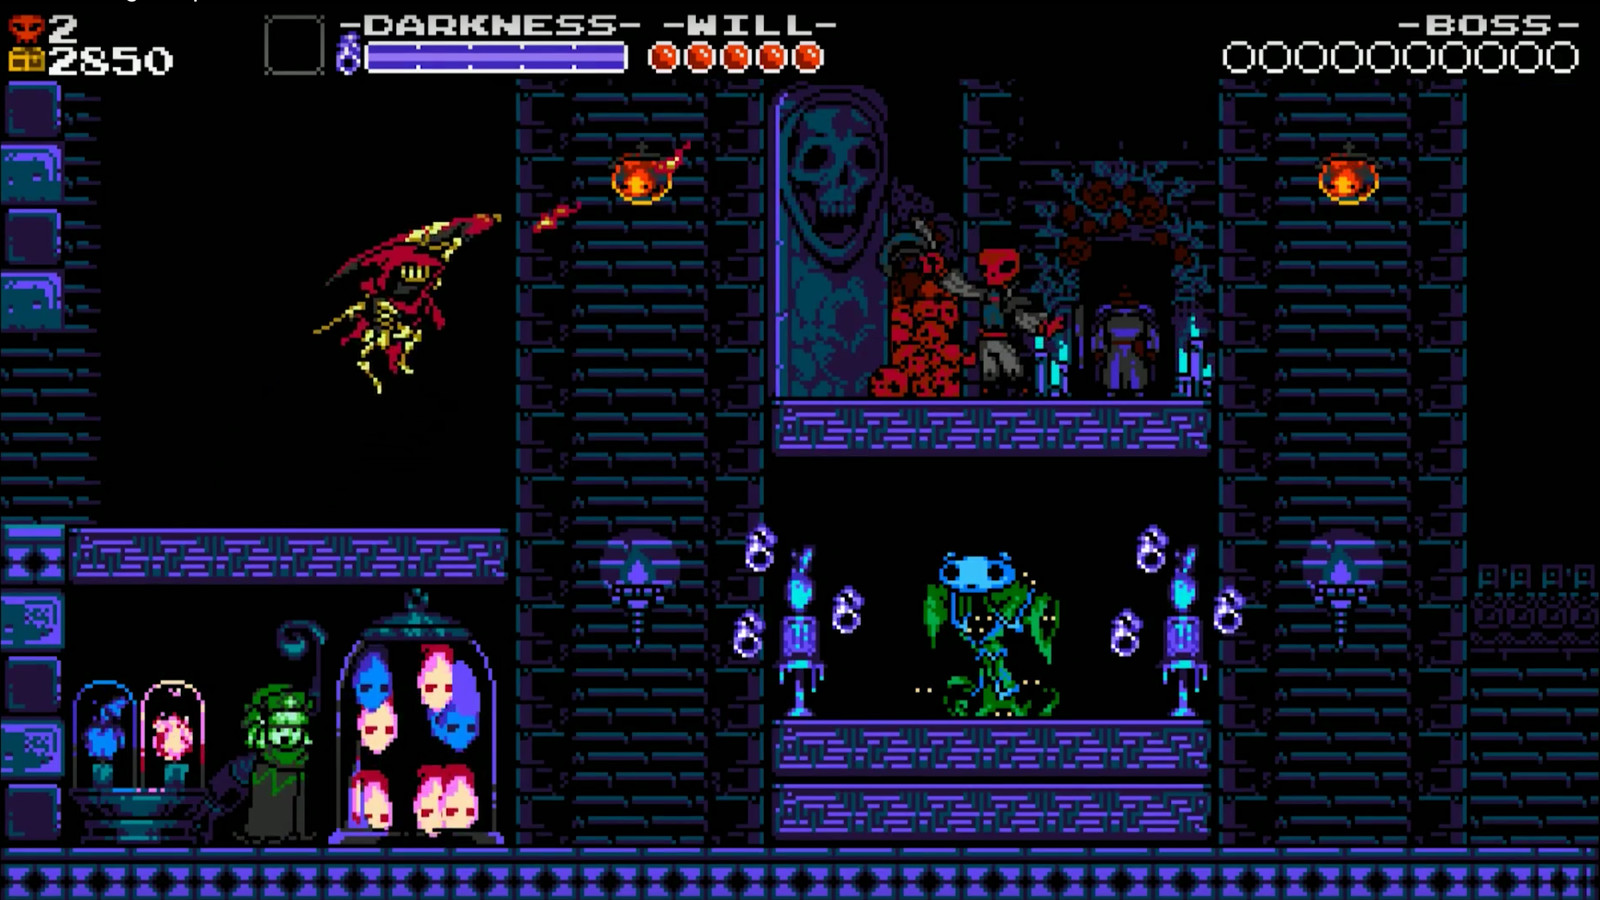 Brilliant NES-style action game Shovel Knight is getting a prequel